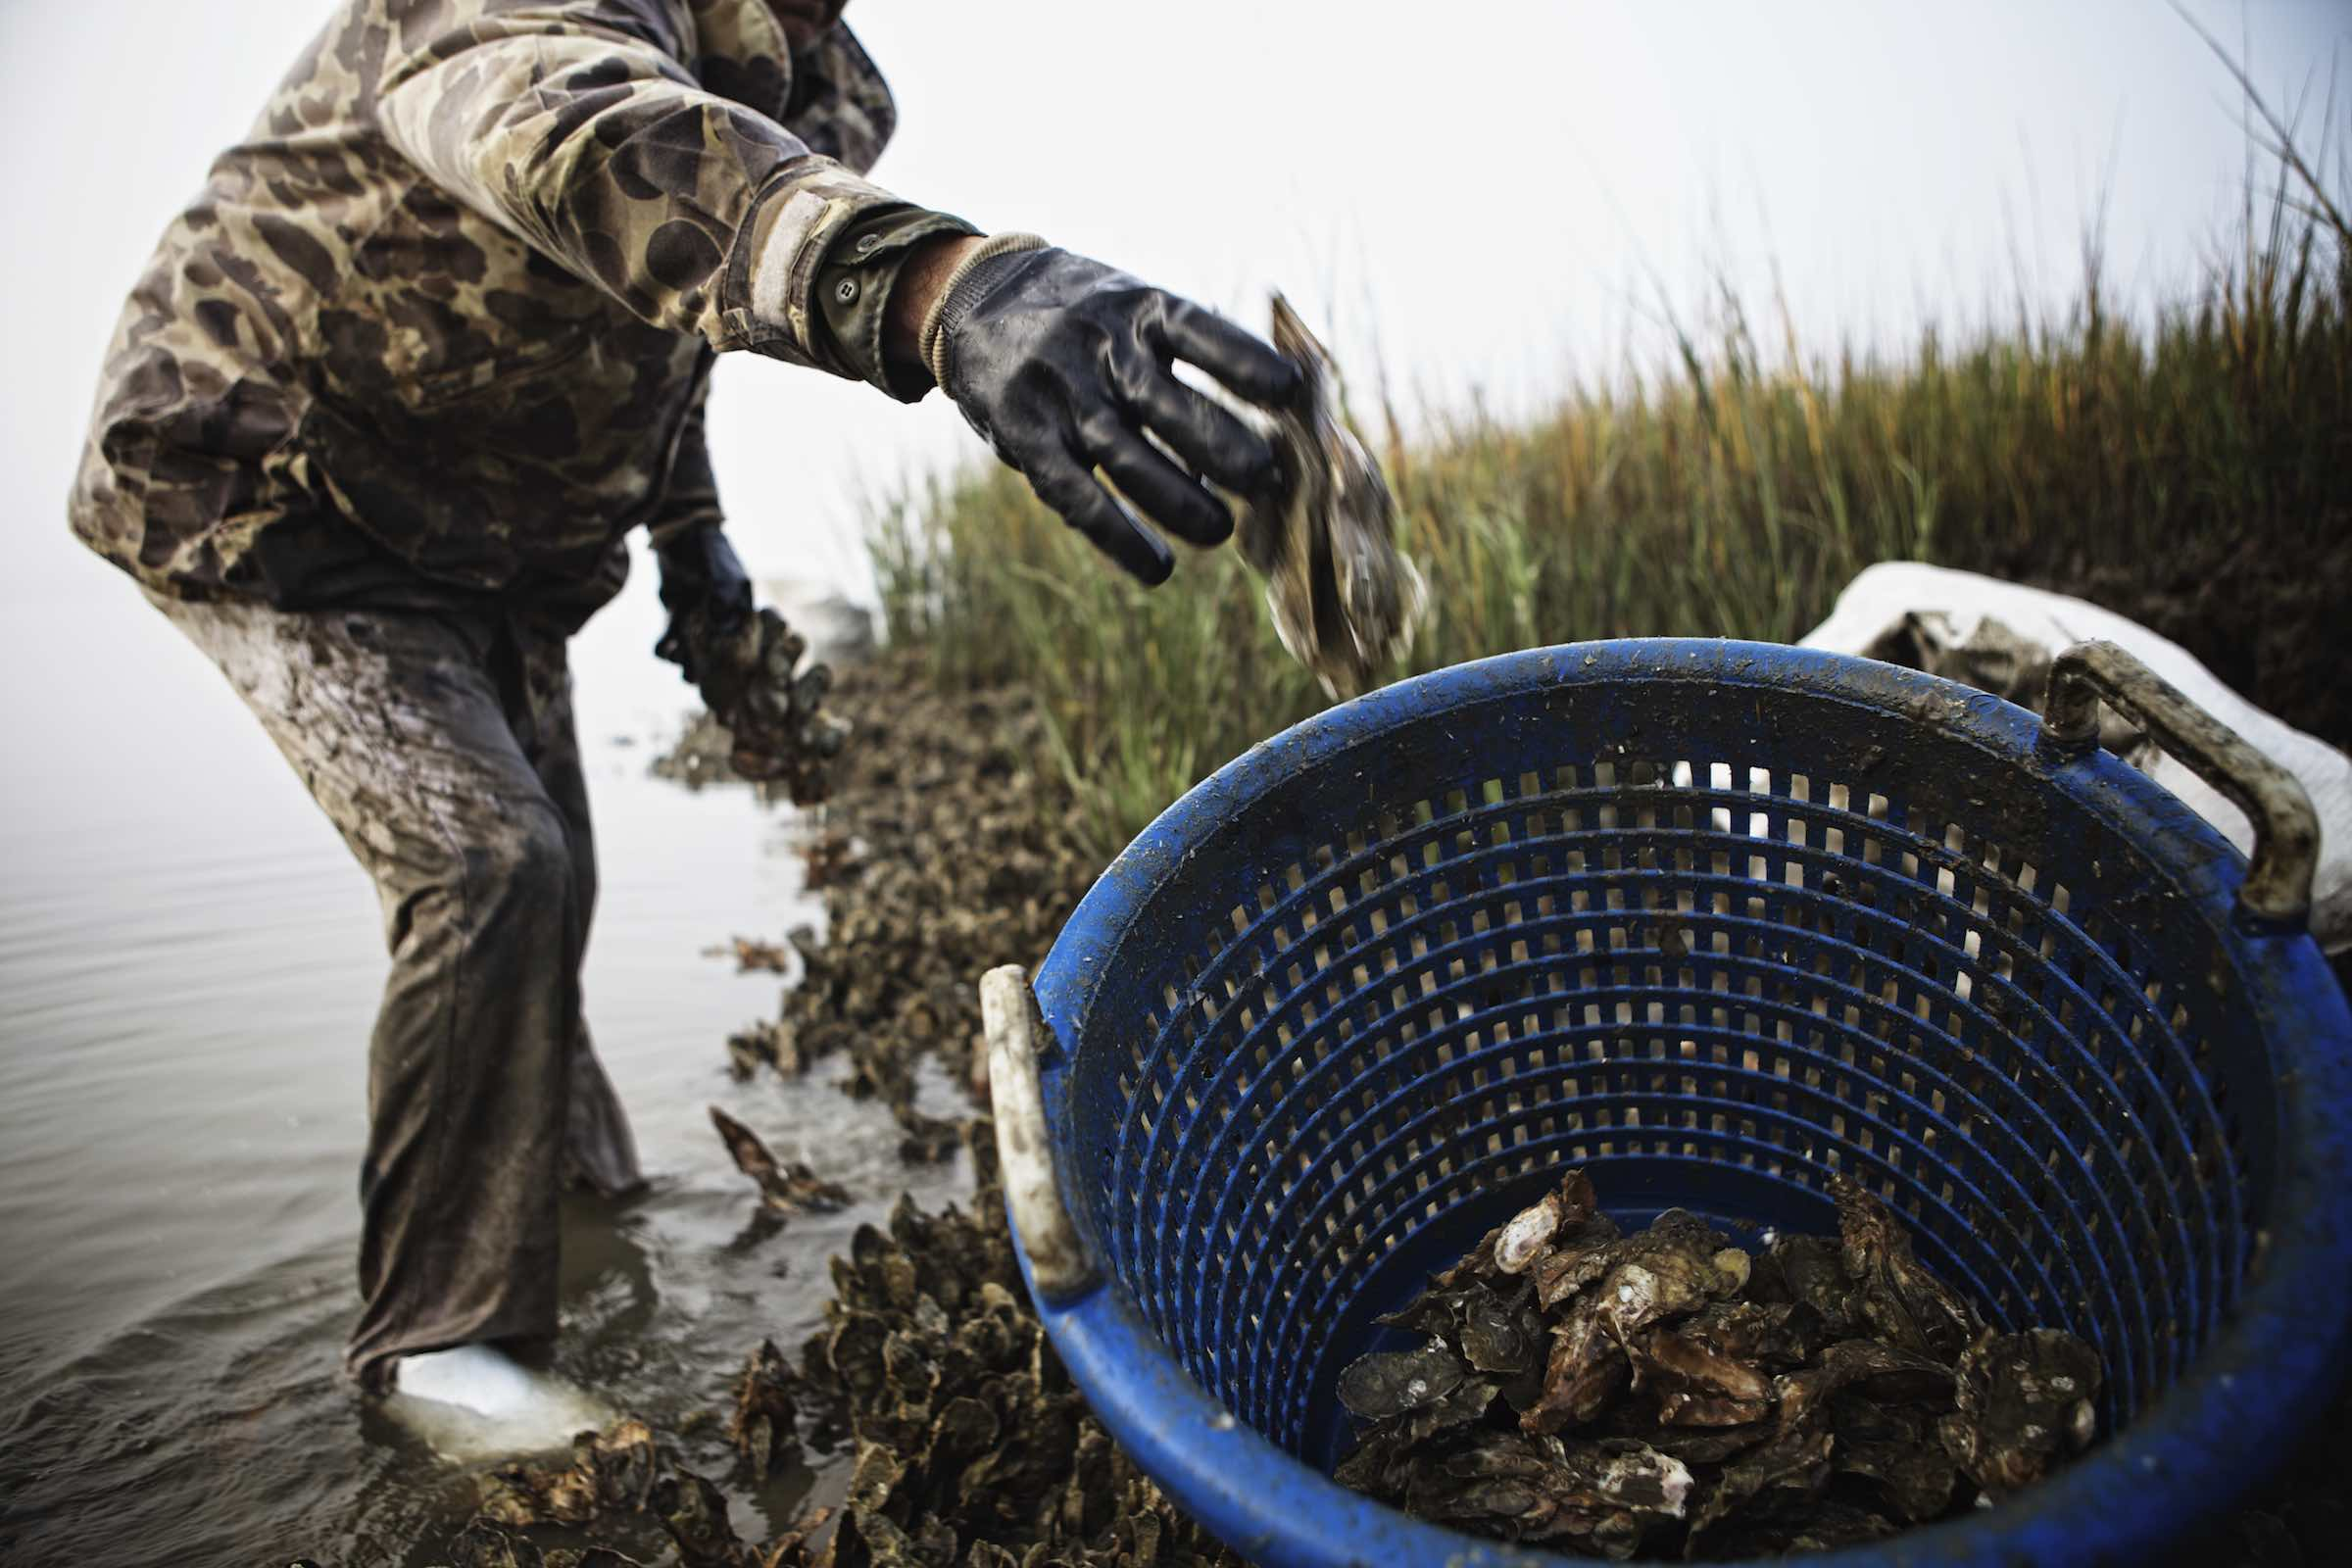 Jody Horton Photography - Fisherman tossing fresh caught oysters into a blue basket.